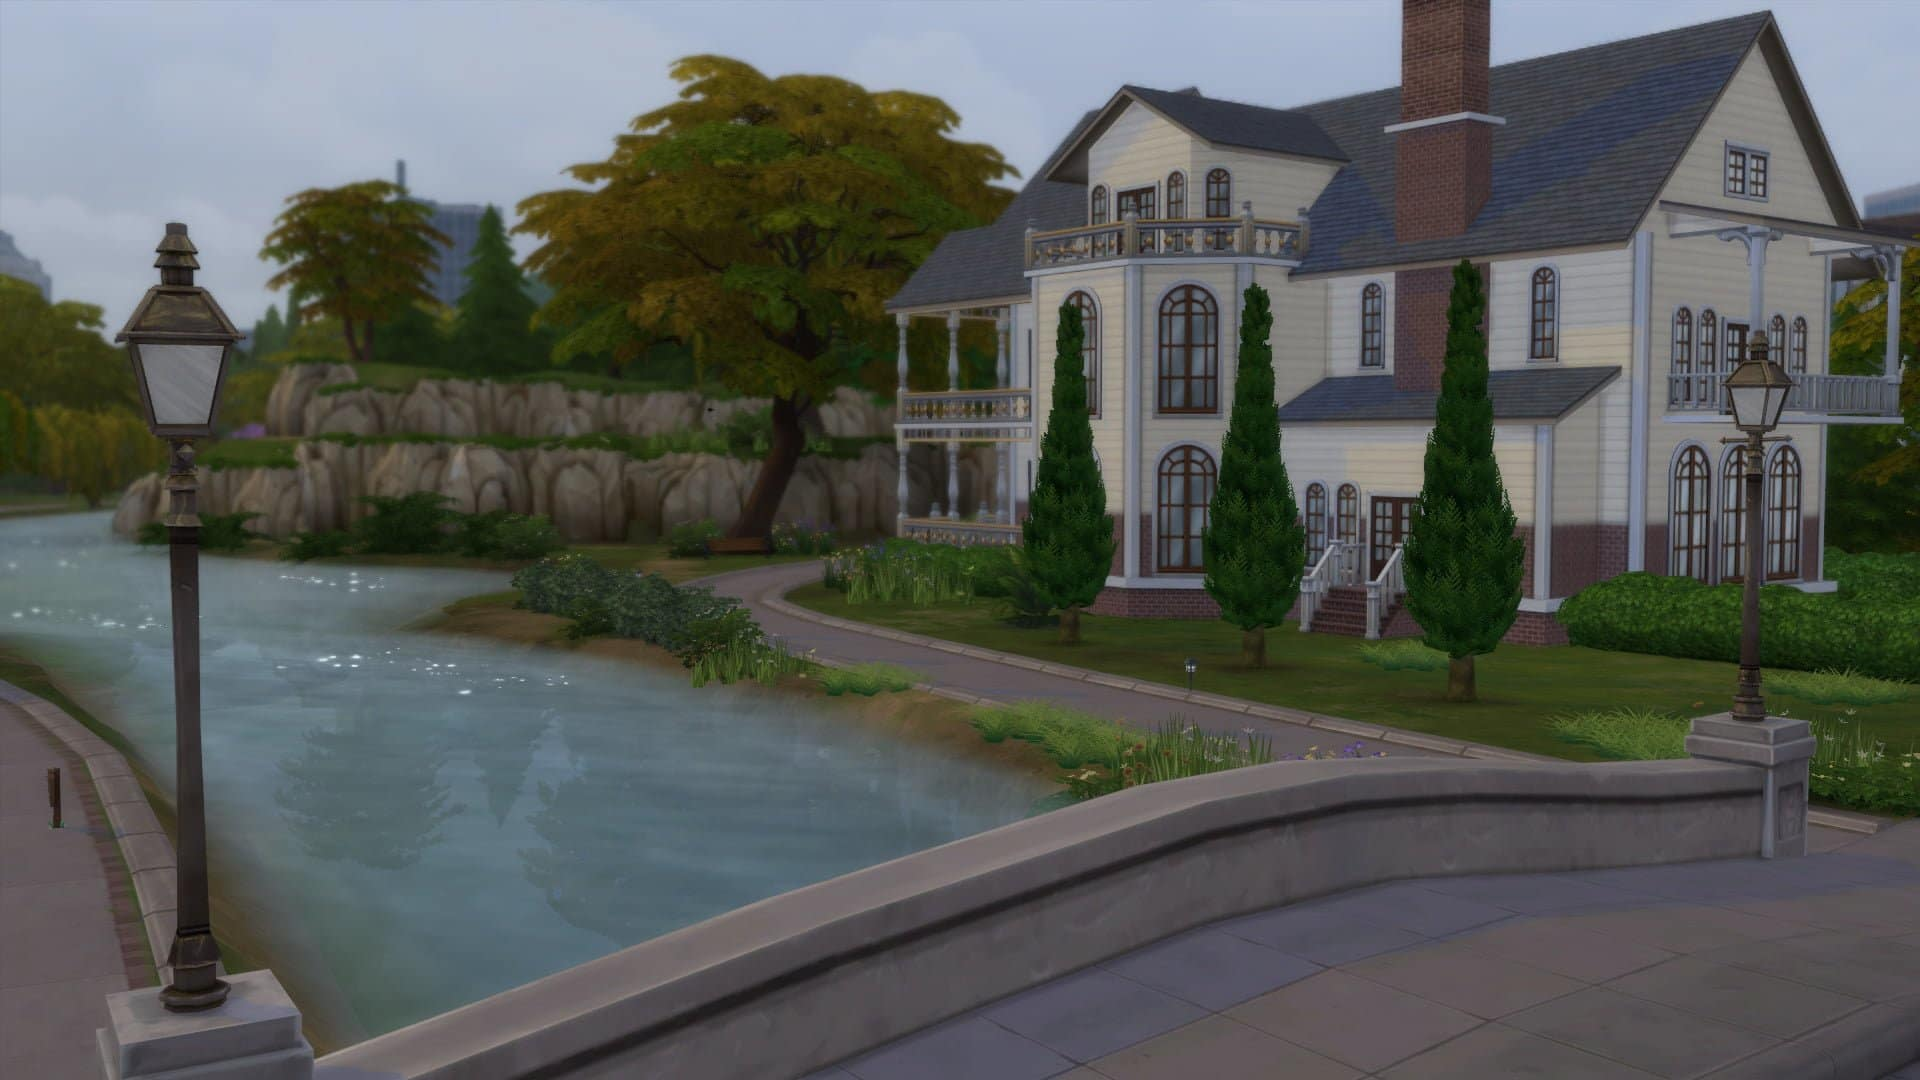 Willow Creek automne Sims 4